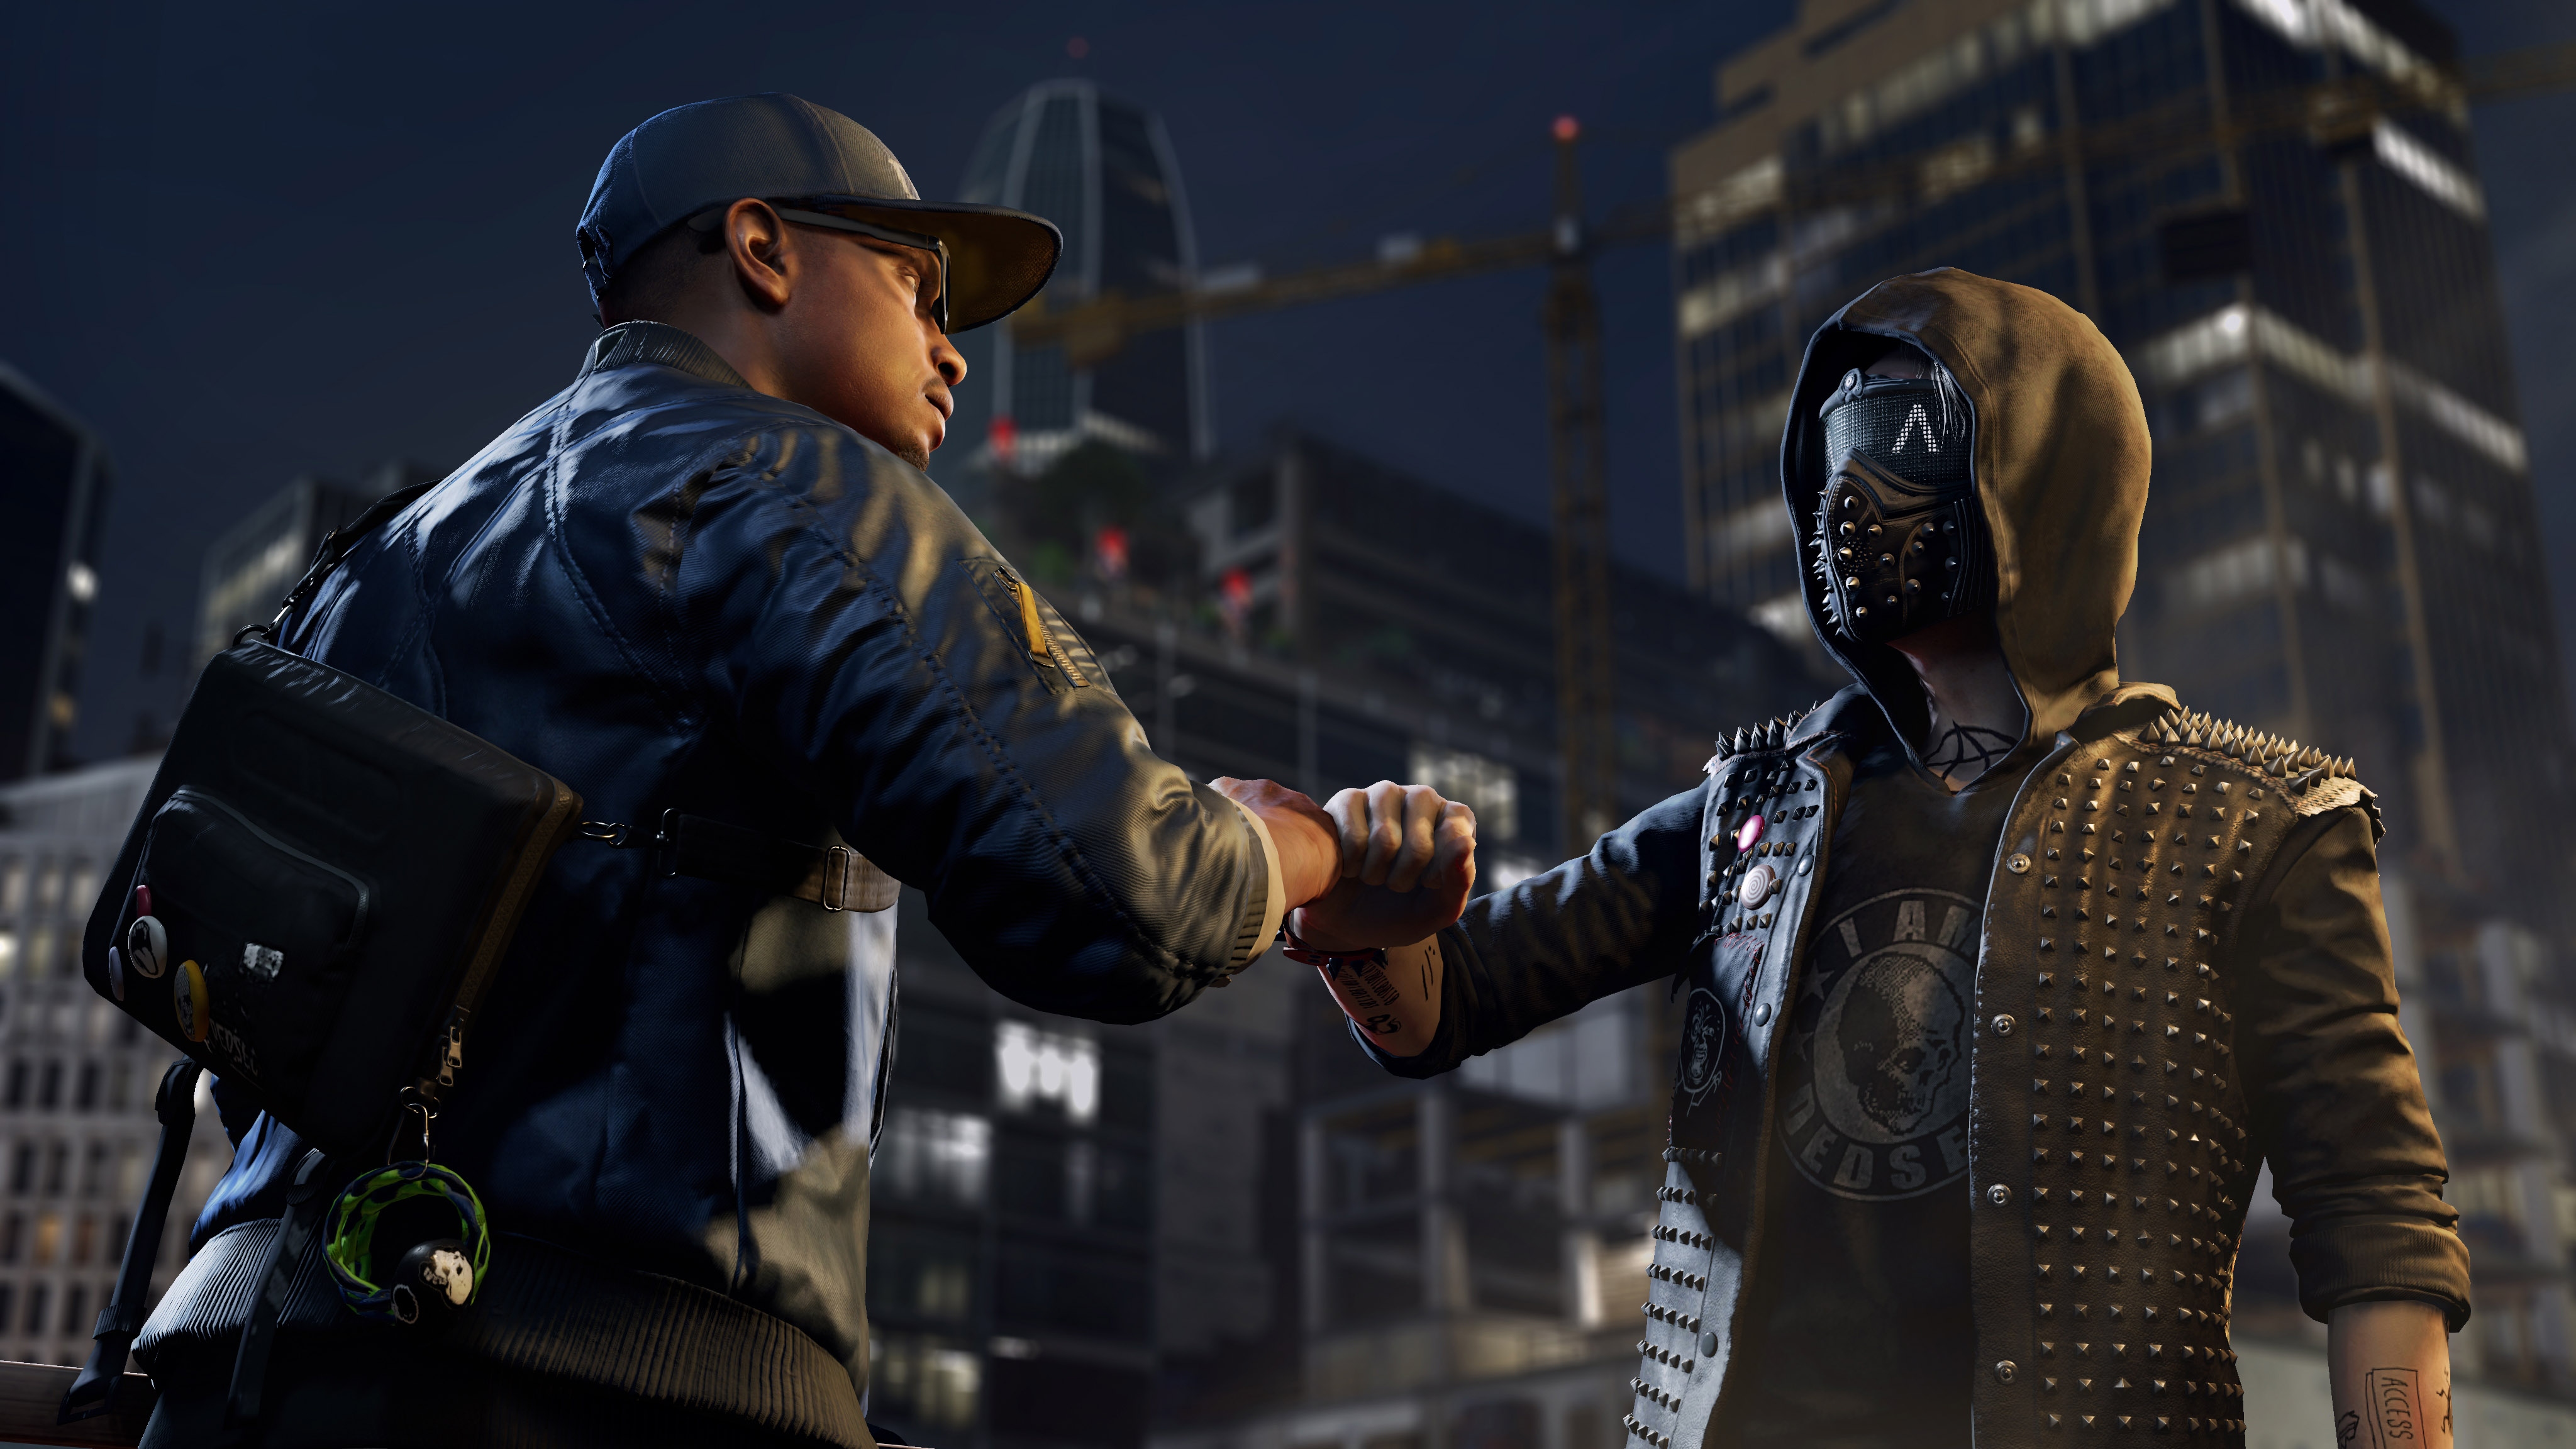 watch dogs 2 4k hd hd games 4k wallpapers images